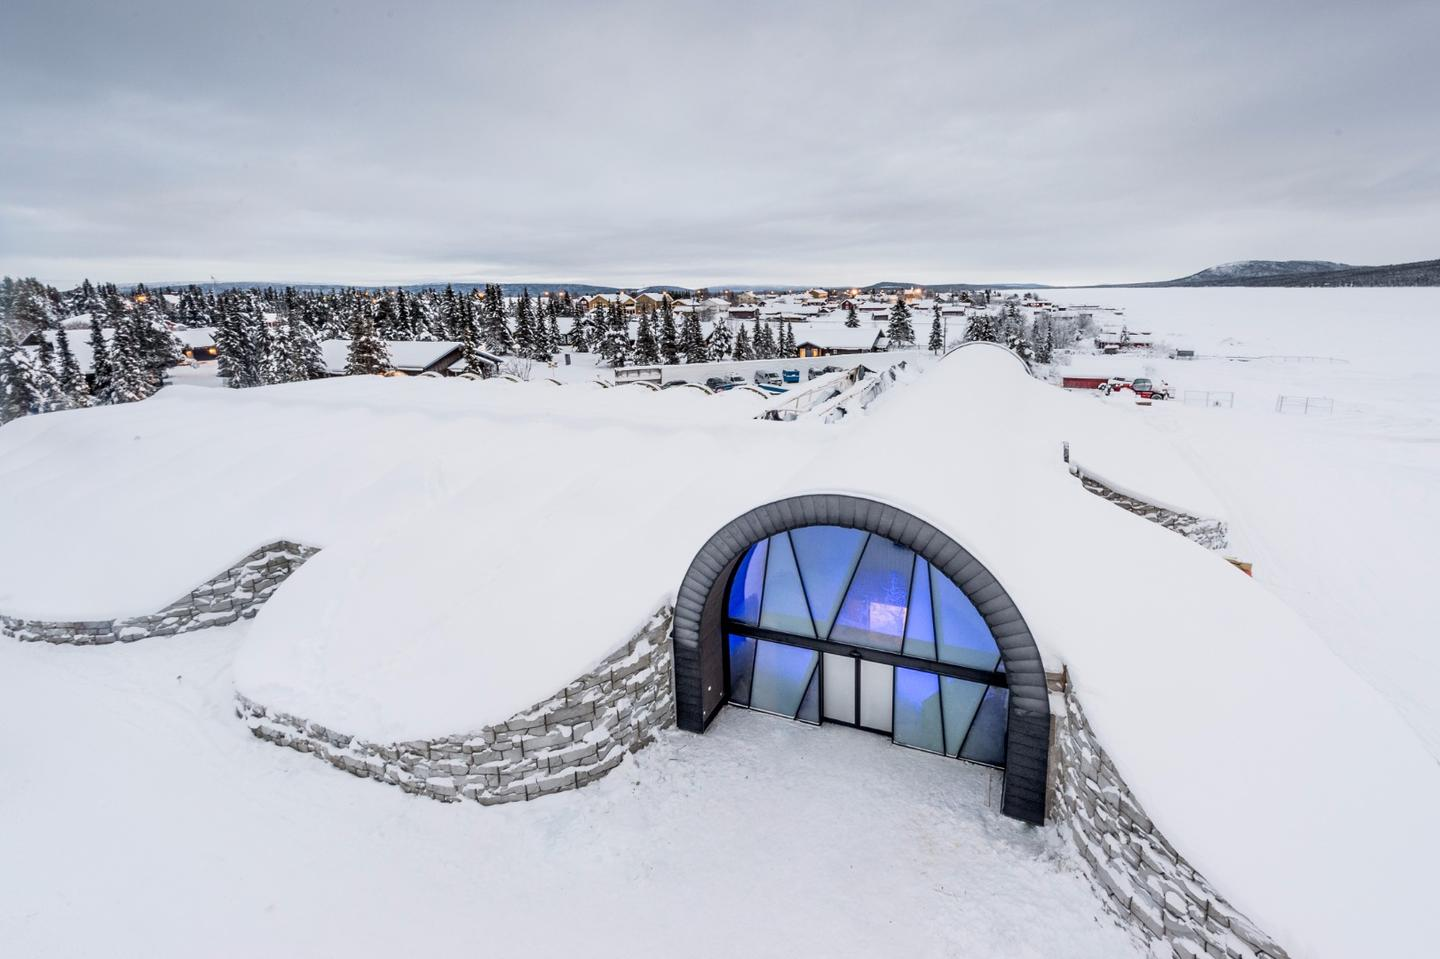 Thanks to a huge solar array powering a refrigeration plant, the Icehotel 365 stays open all-year-round